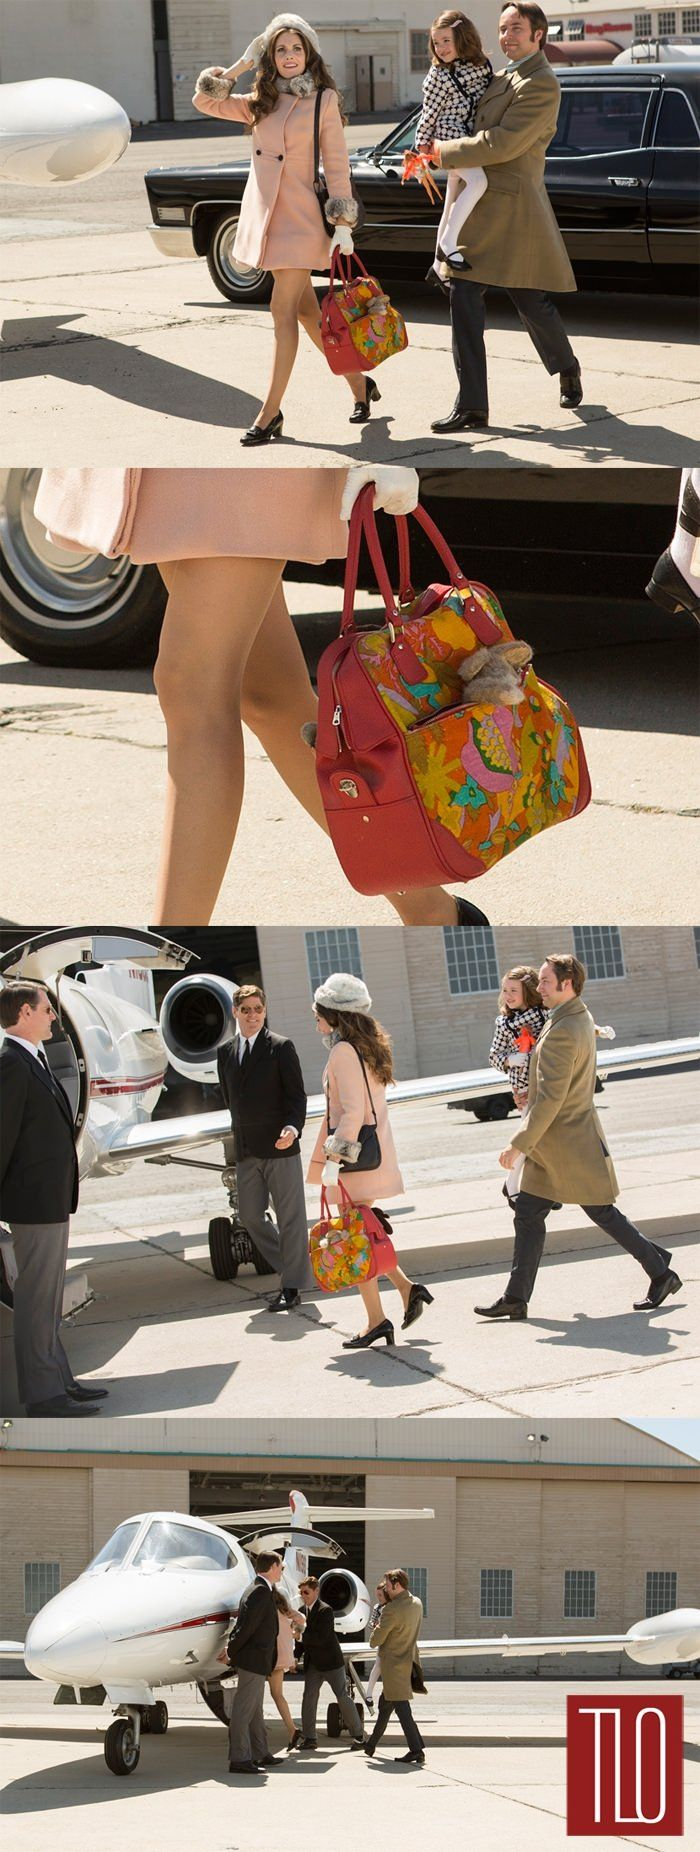 Mad-Men-Season-7-Finale-Mad-Style-Costumes-Television-Tom-Lorenzo-Site-TLO (29)